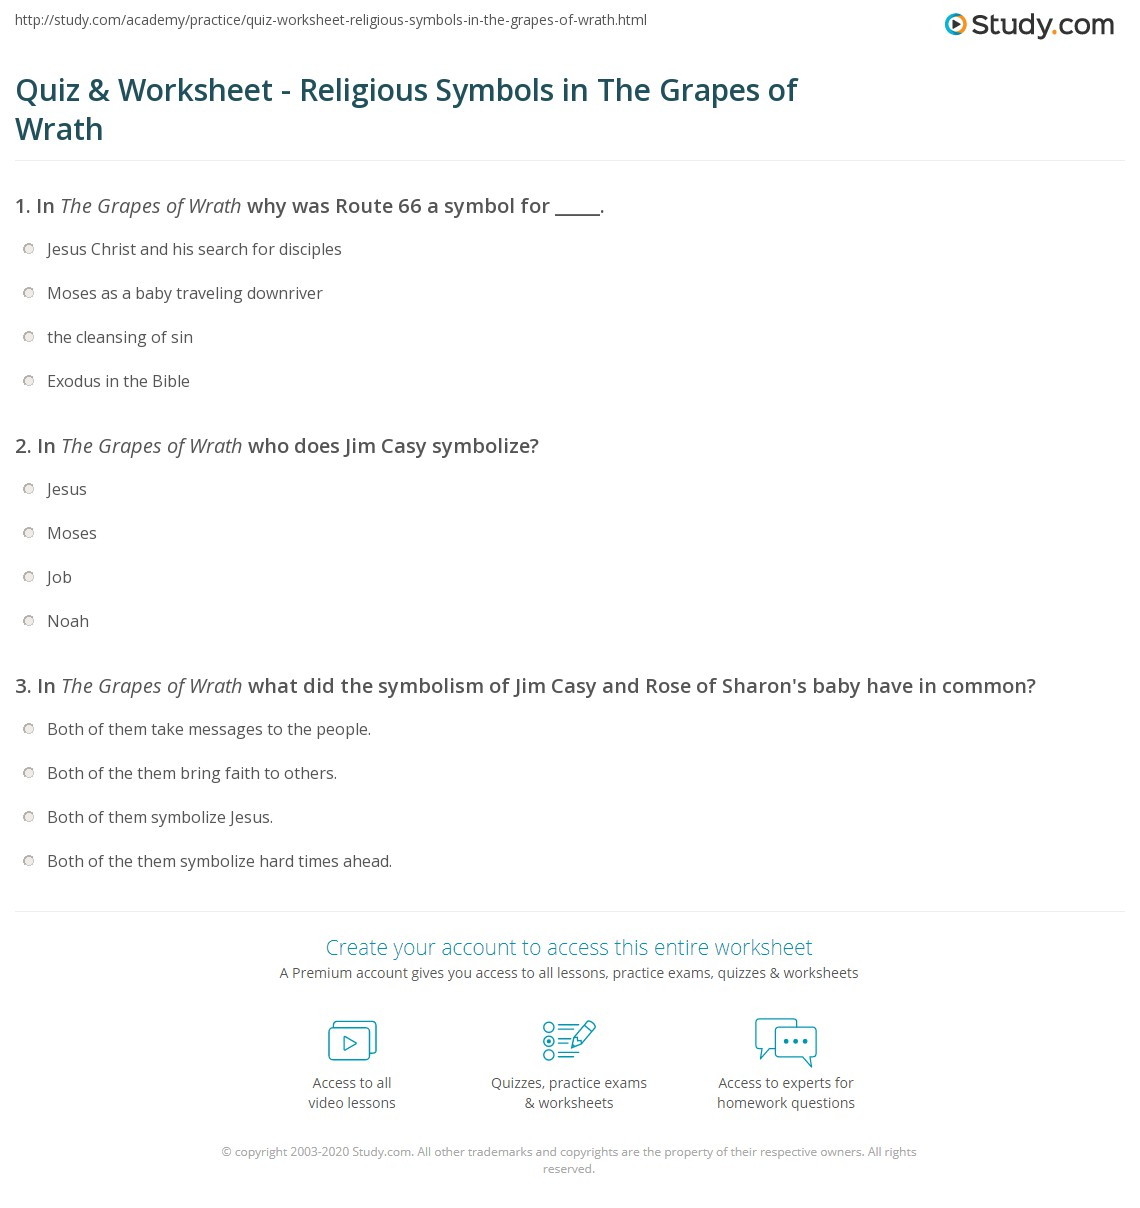 Quiz Worksheet Religious Symbols In The Grapes Of Wrath Study